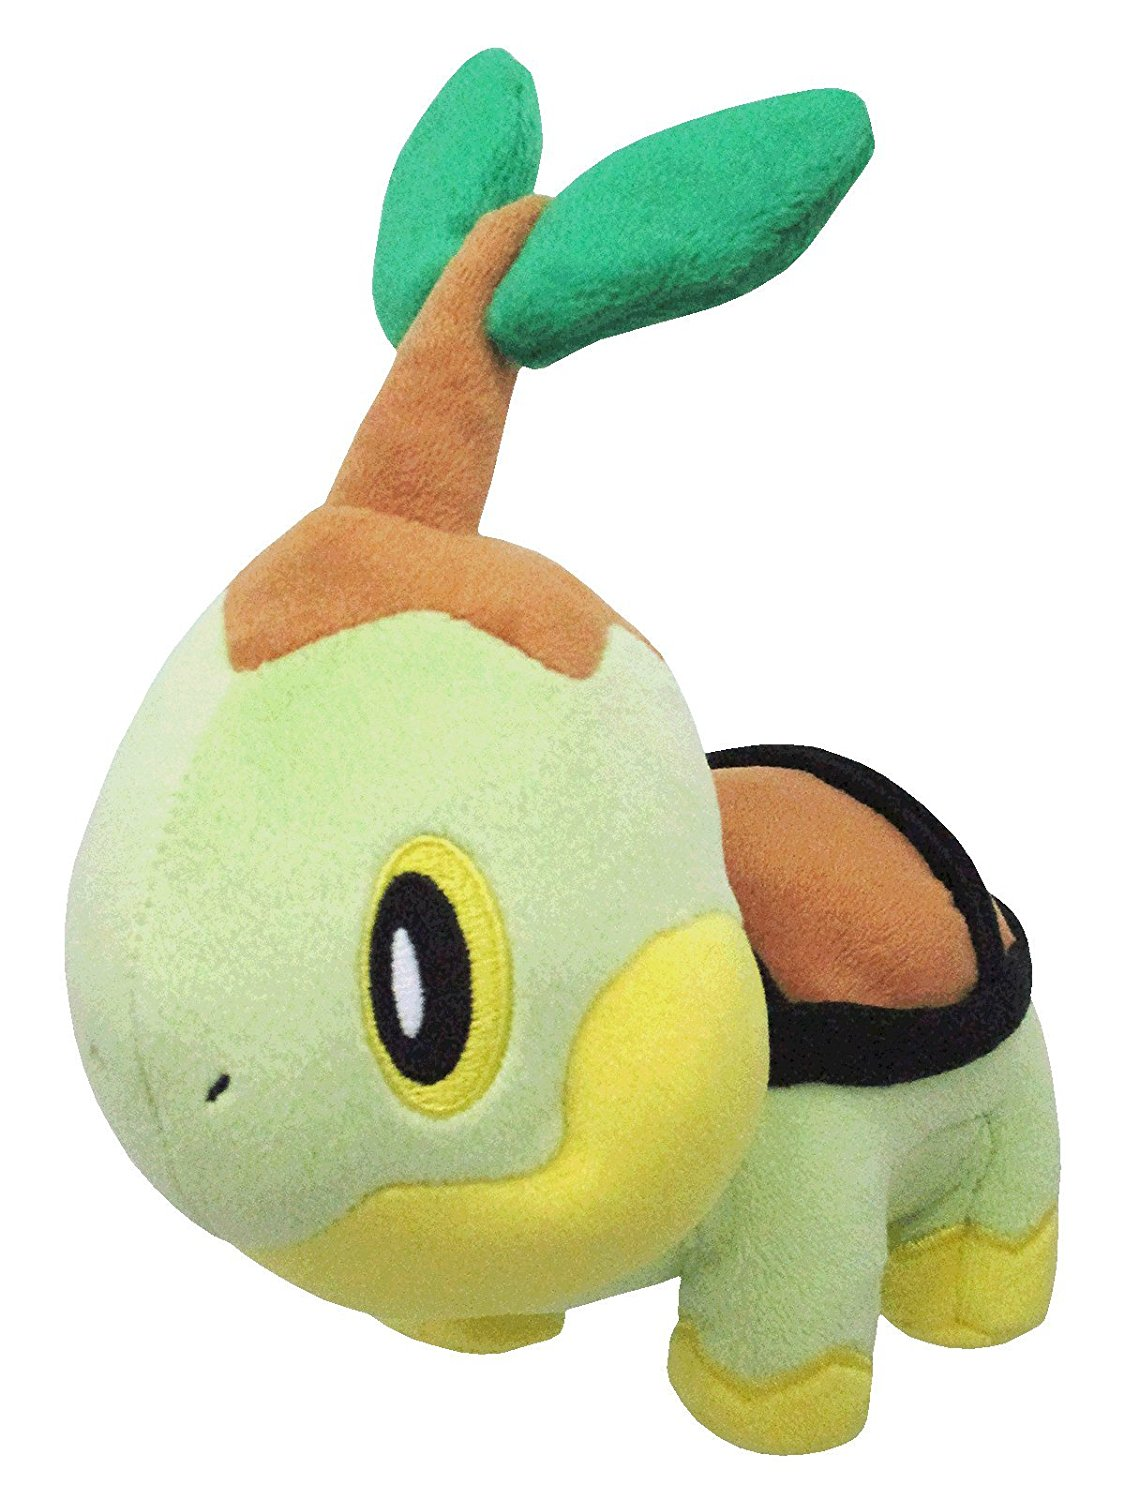 Japanese Pokemon Turtwig Plush PP87